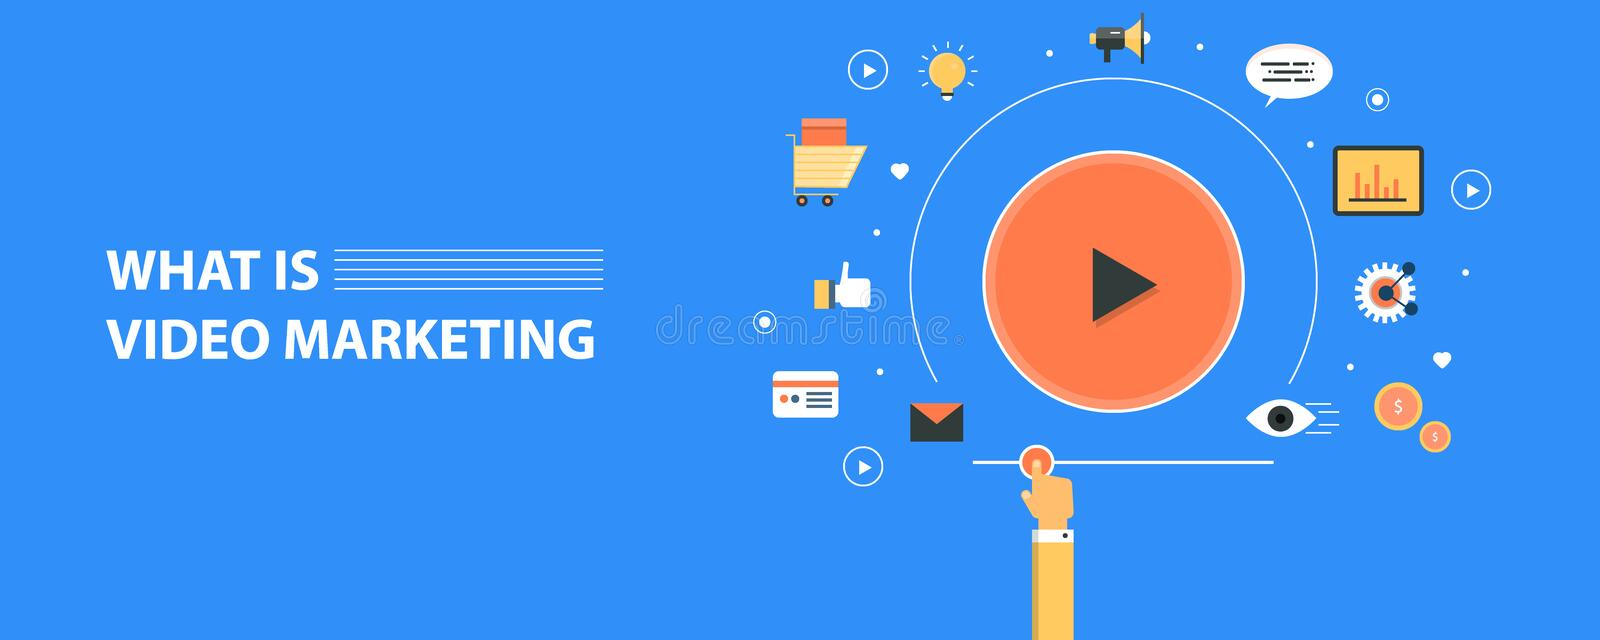 Concepto moderno de márketing video, bandera plana del vector del diseño libre illustration